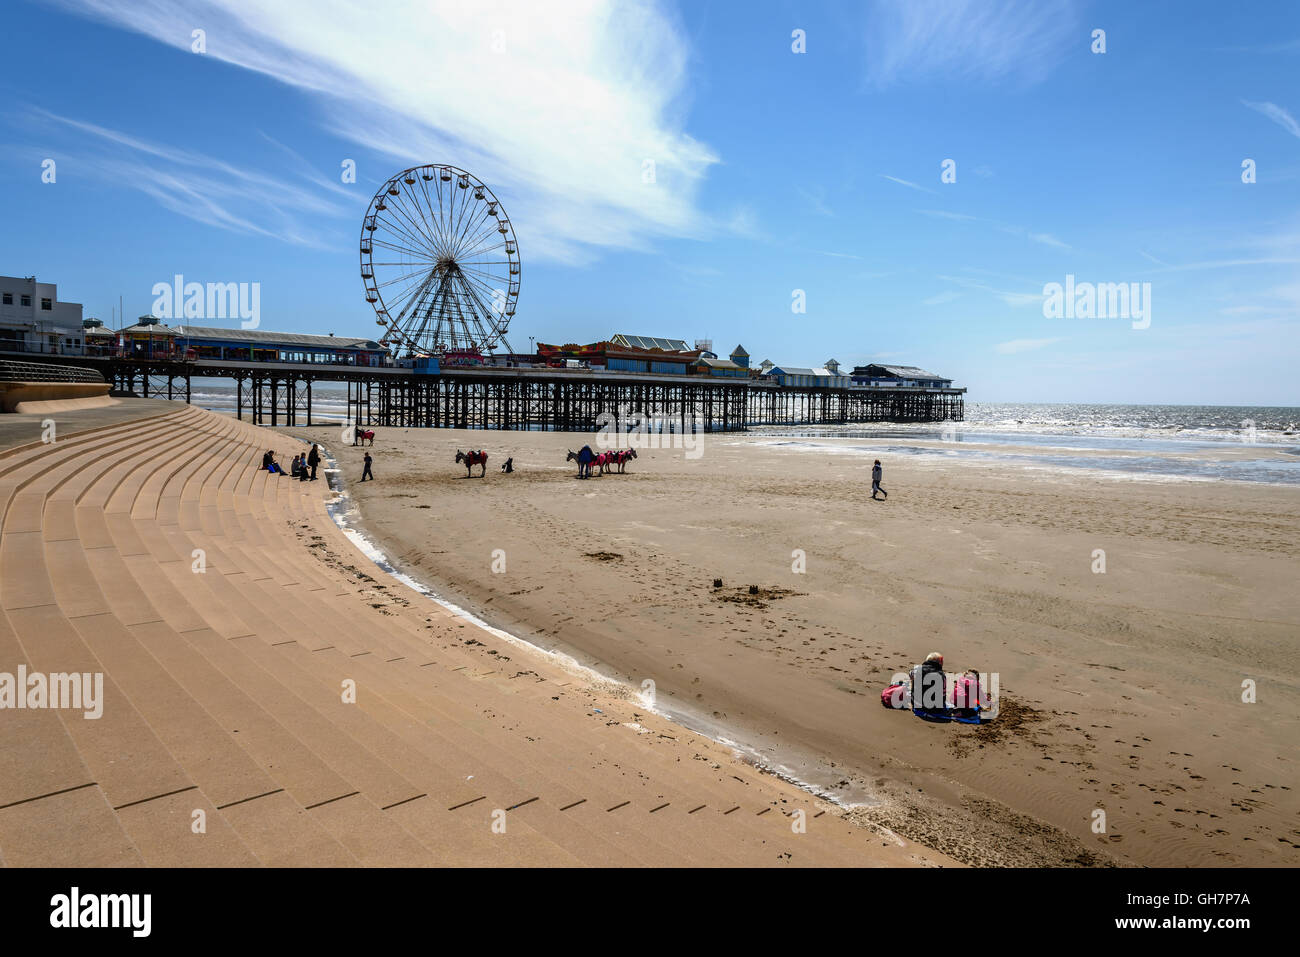 Pleasure Beach is an amusement park situated along the Fylde coast in Blackpool, Lancashire, England. Stock Photo